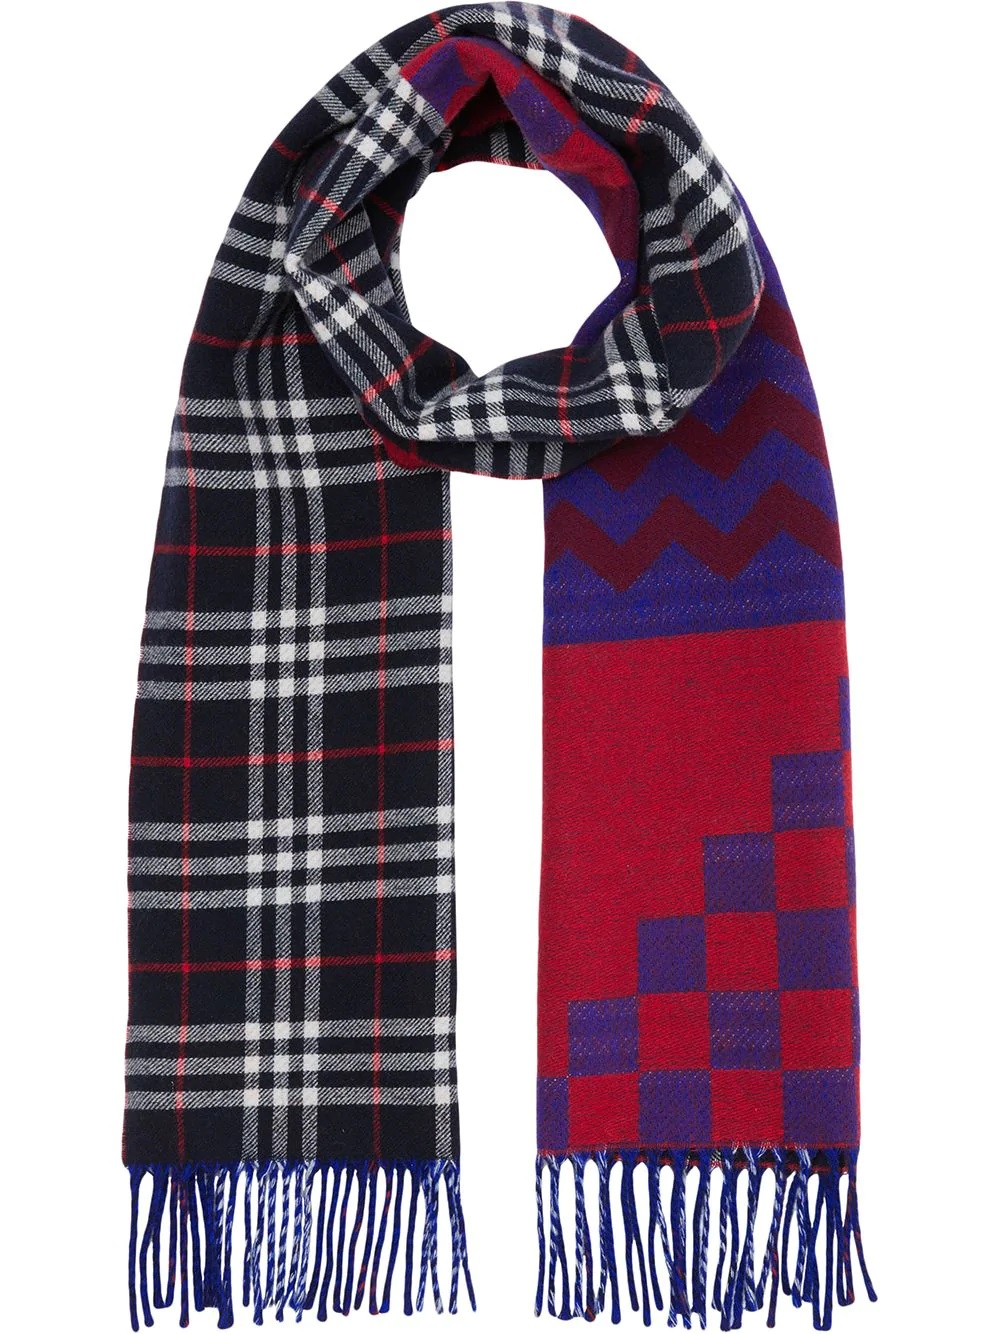 Burberry Reversible Graphic And Check Wool Cashmere Scarf In Blue